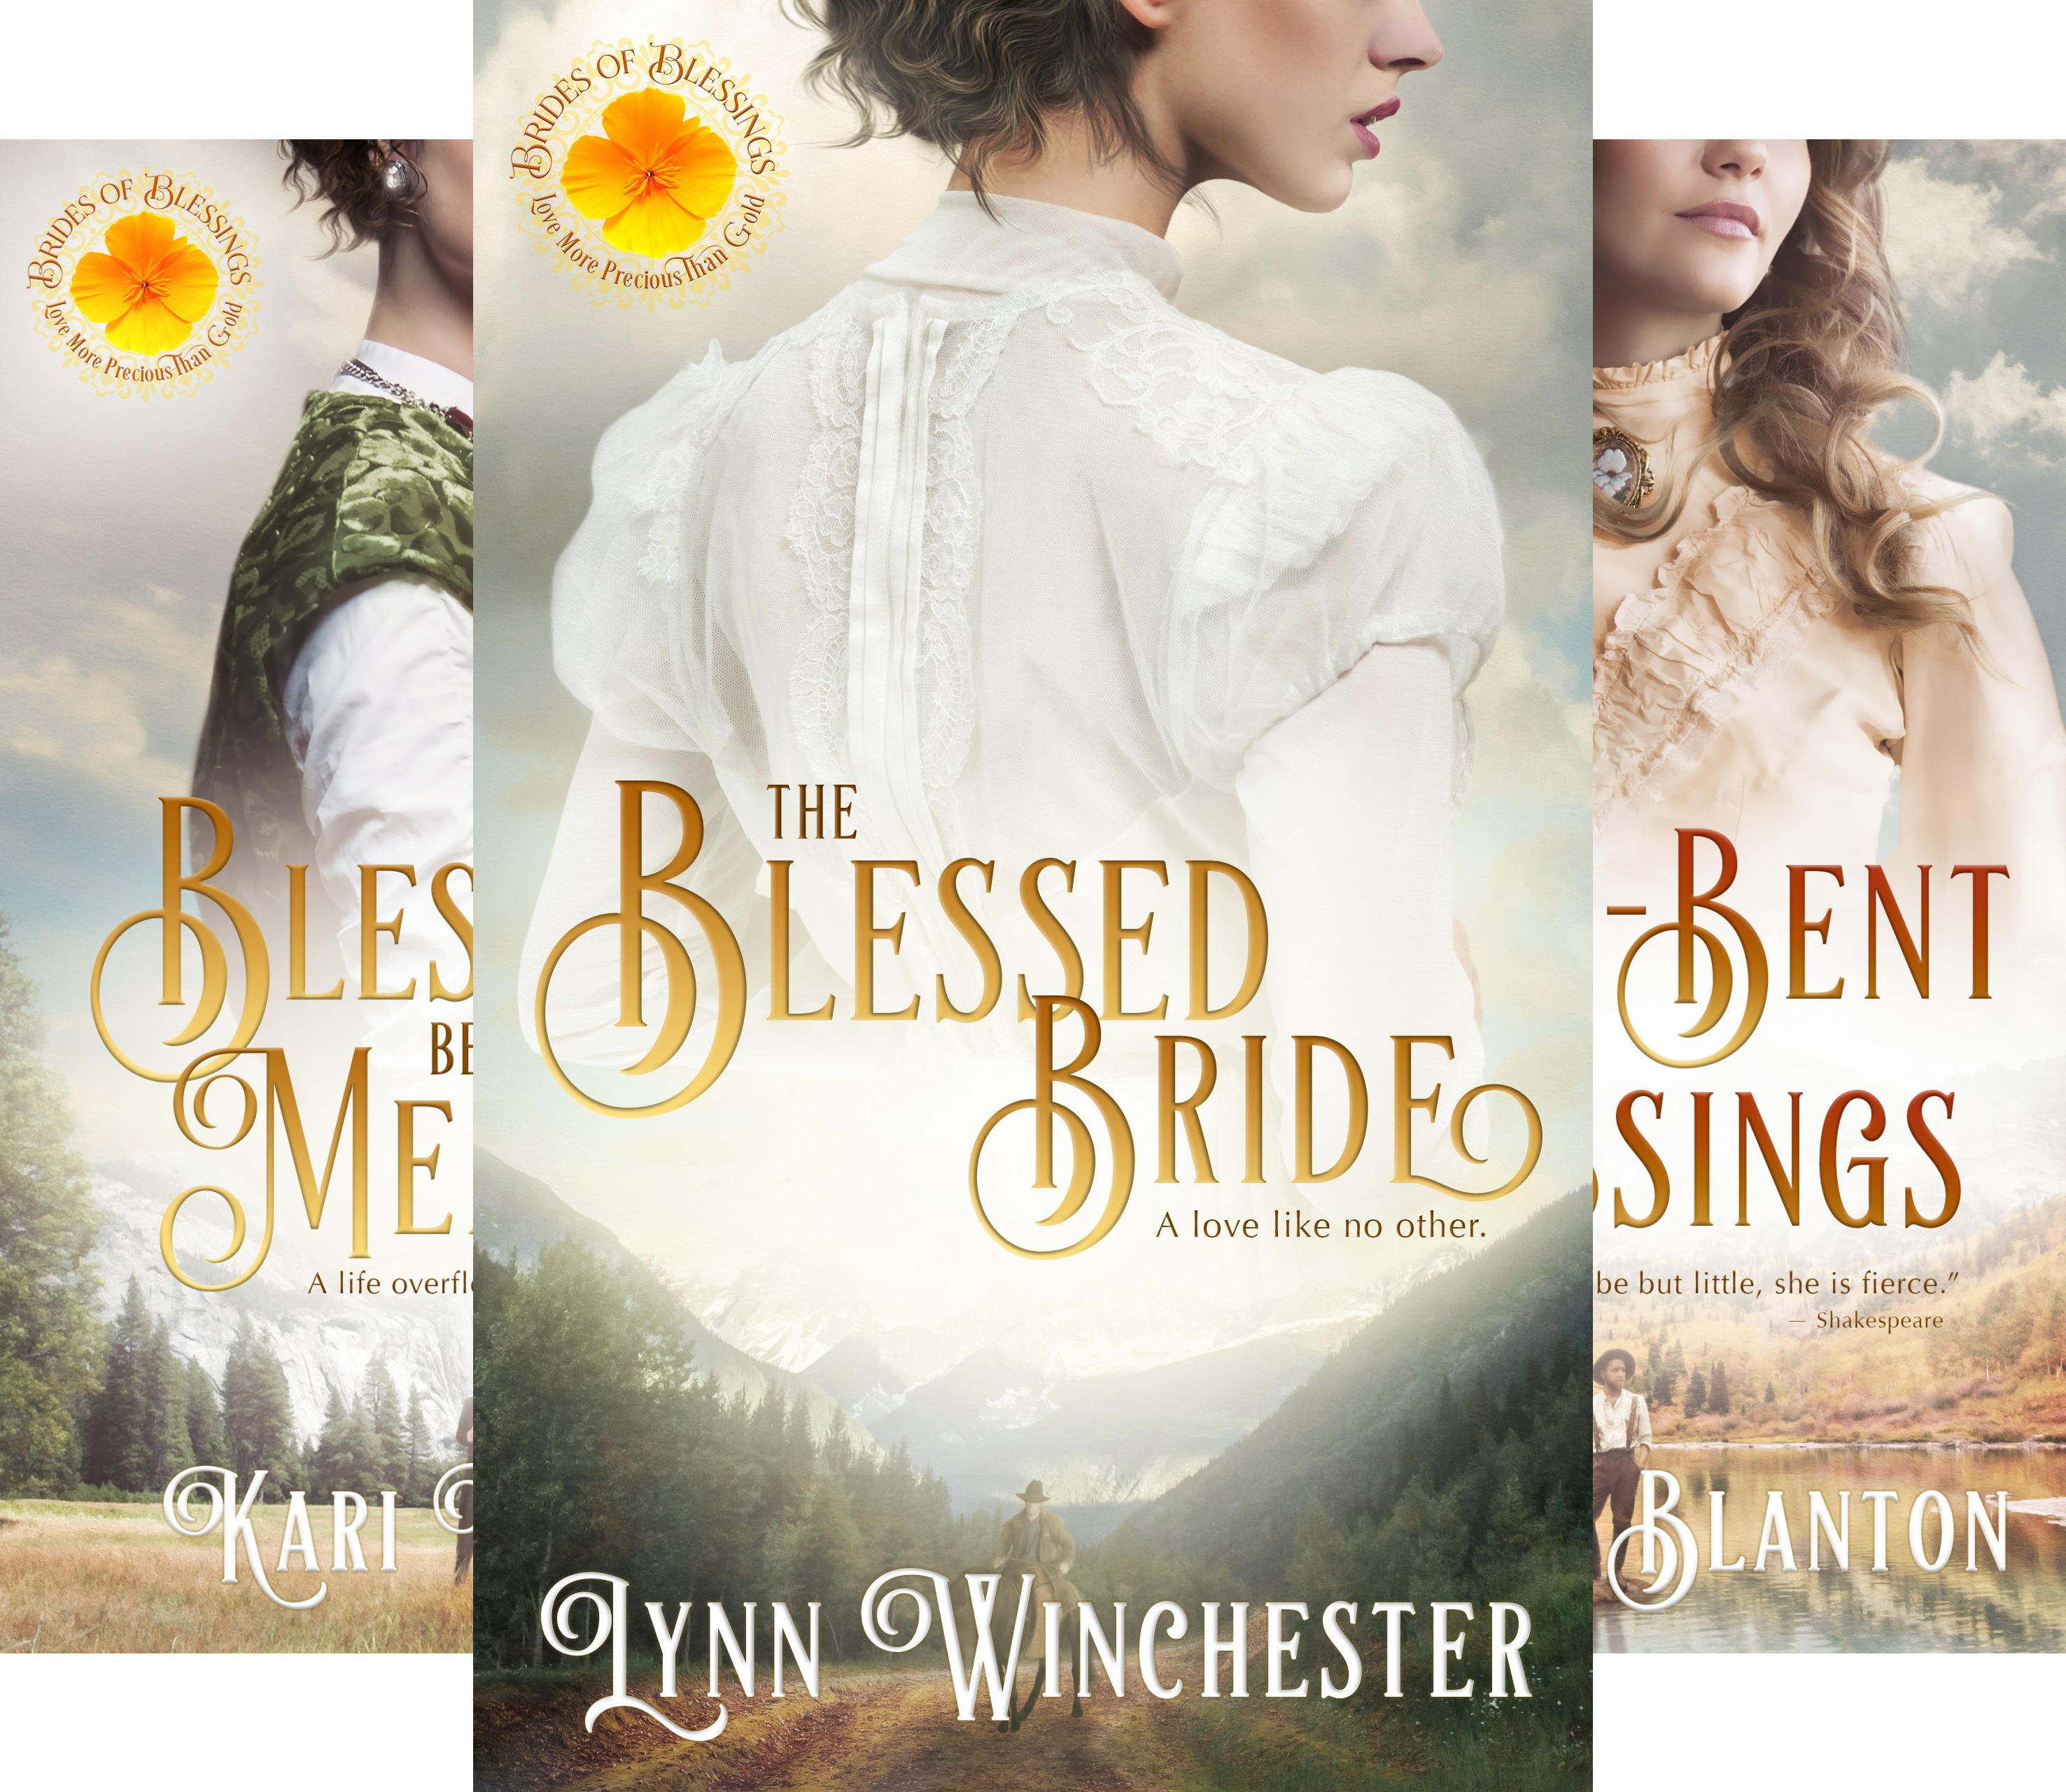 Brides of Blessings (9 Book Series)